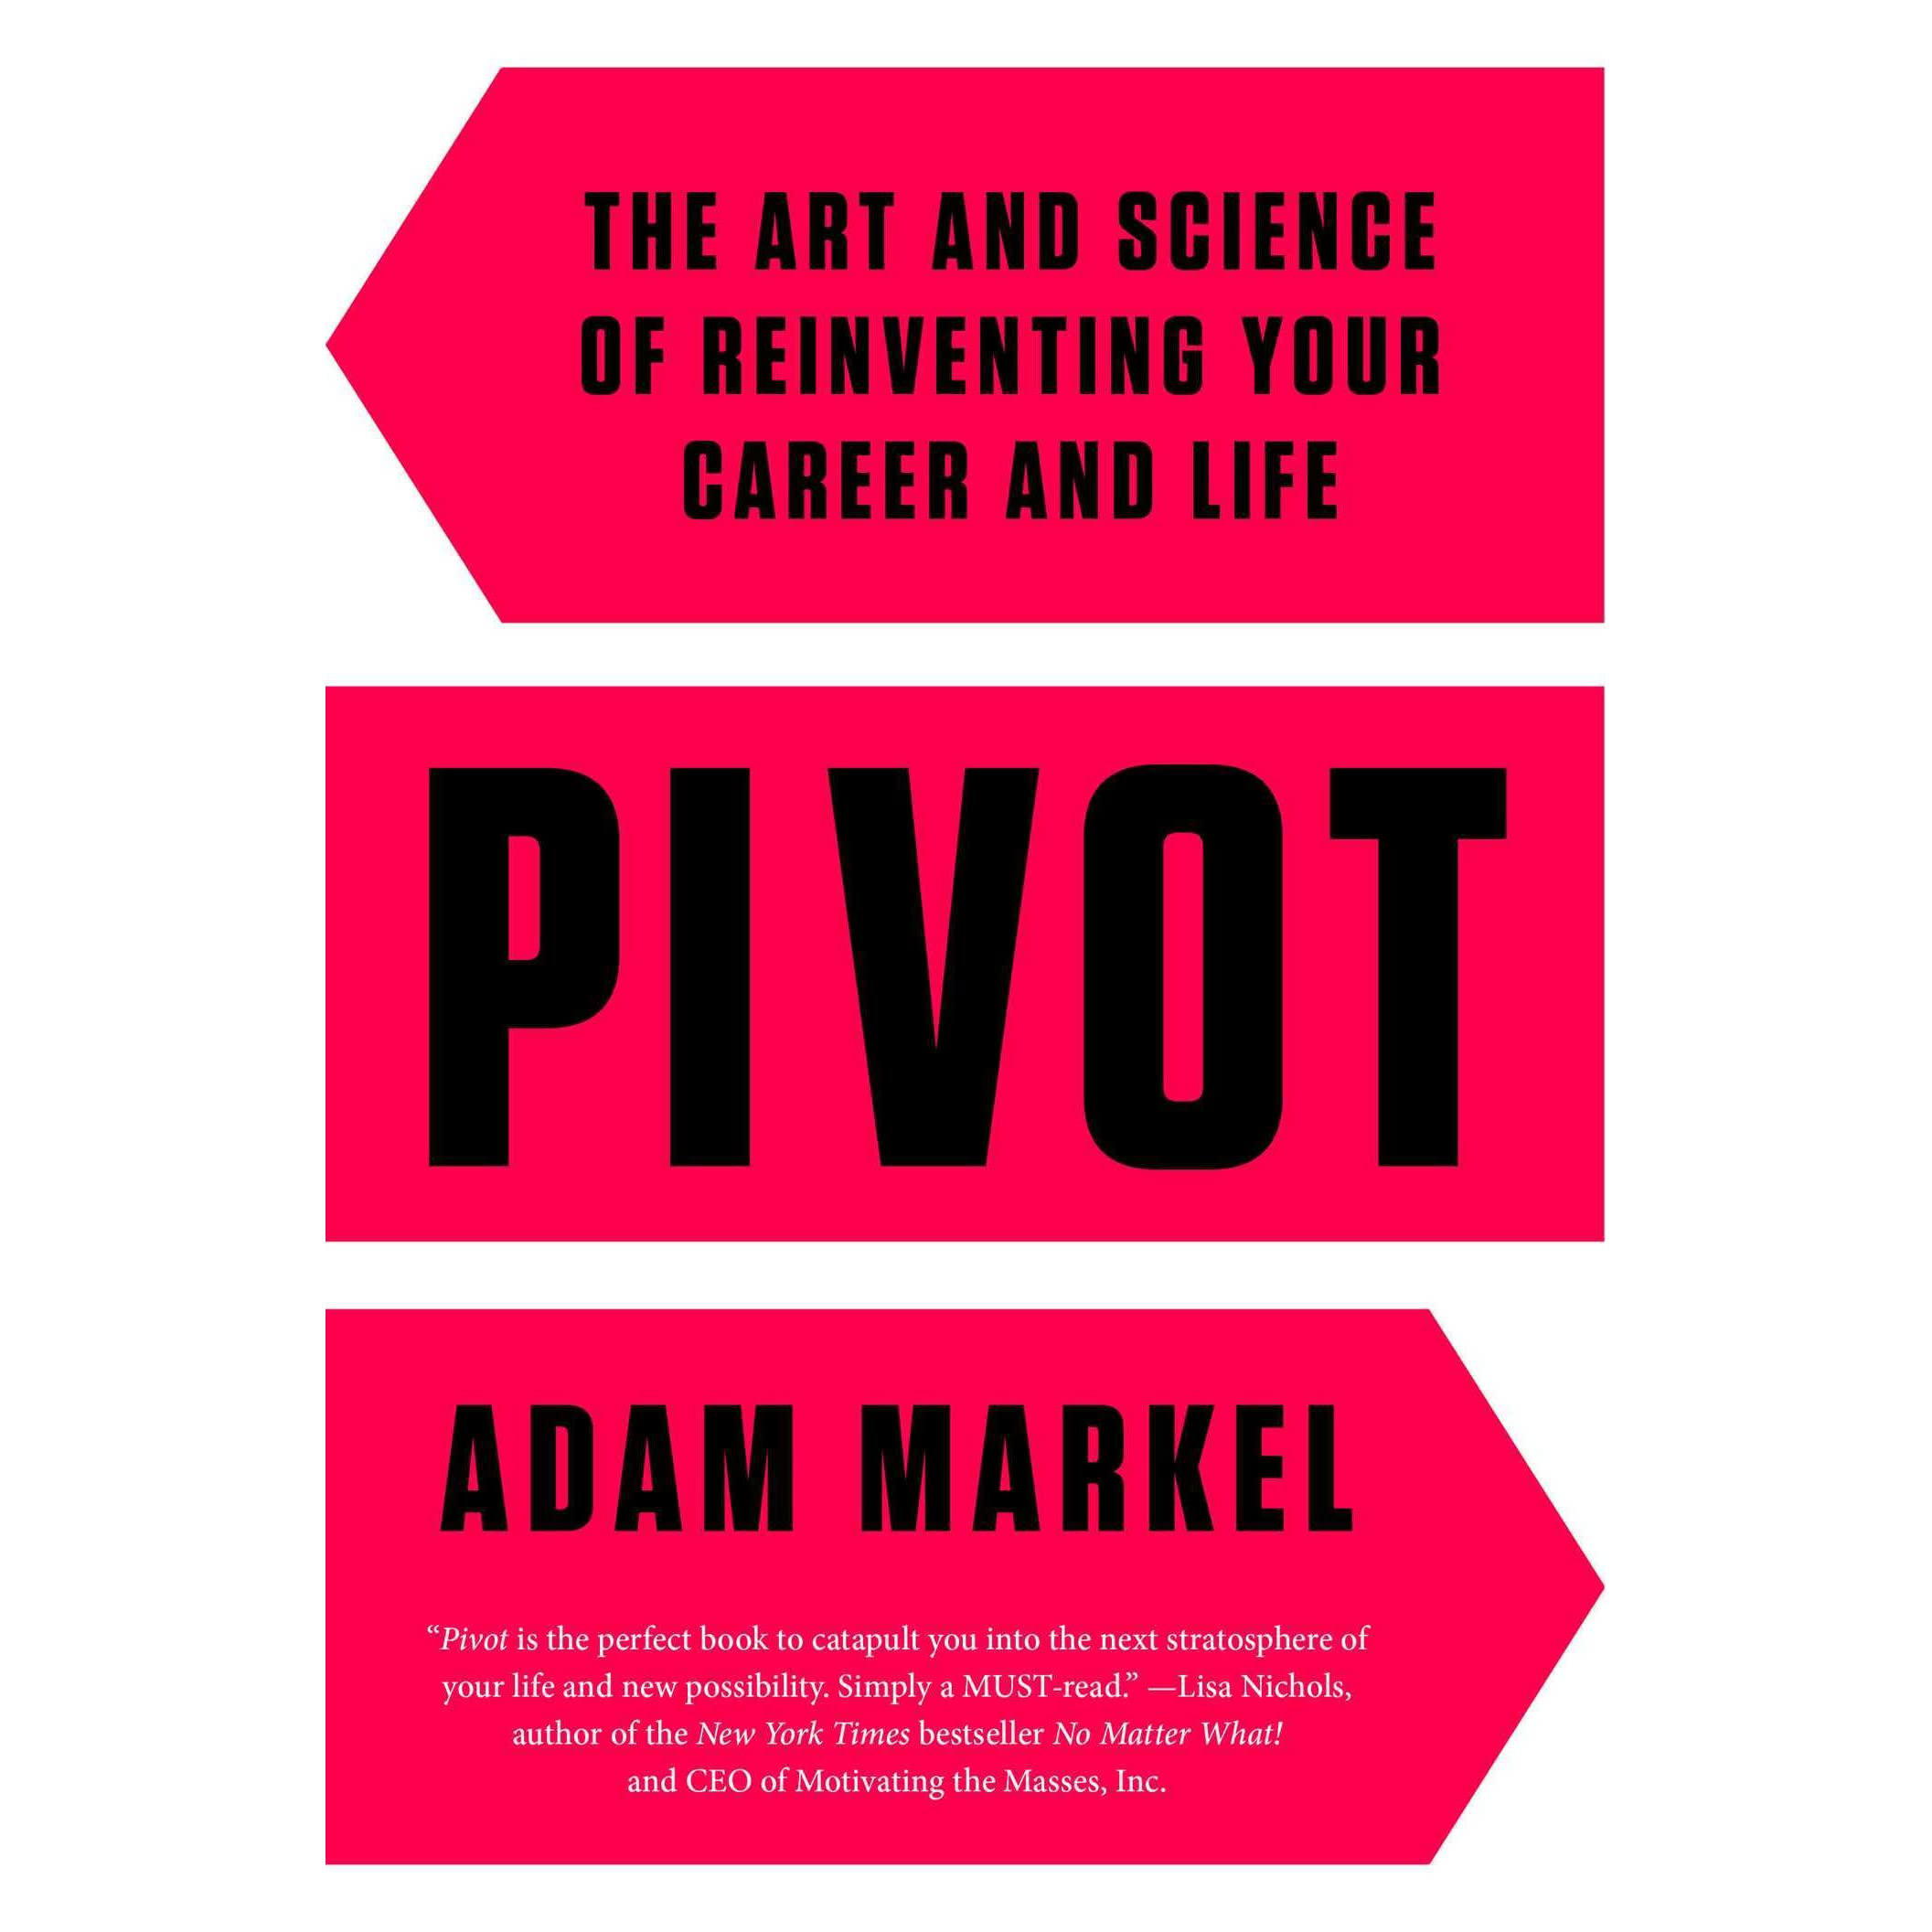 pivot the art and science of reinventing your career and life by pivot the art and science of reinventing your career and life by adam markel reviews discussion bookclubs lists